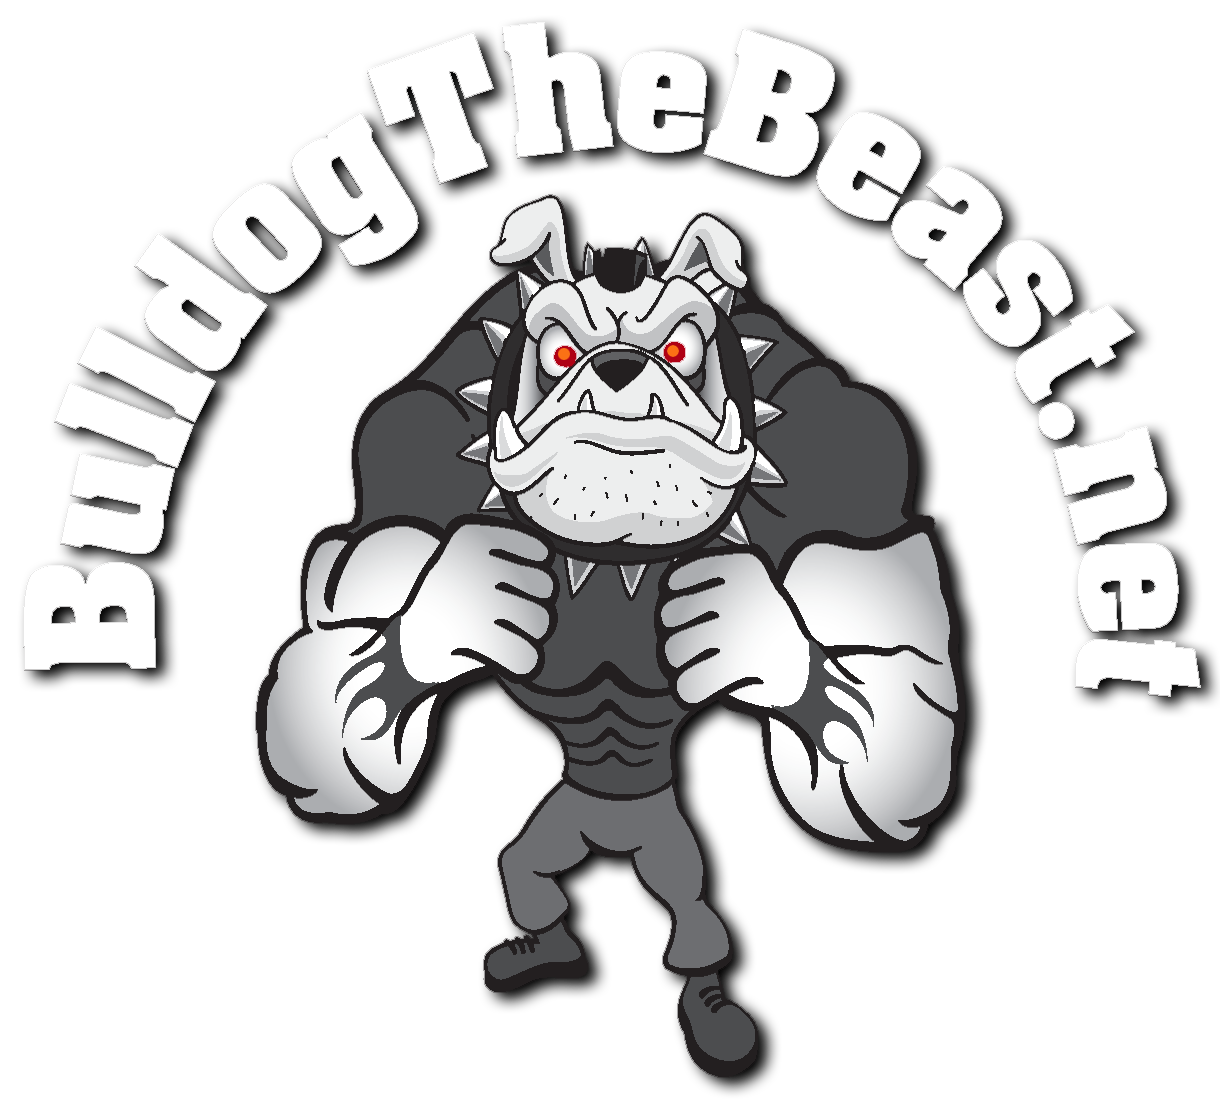 Bulldog the beast and. Weight clipart physical strength